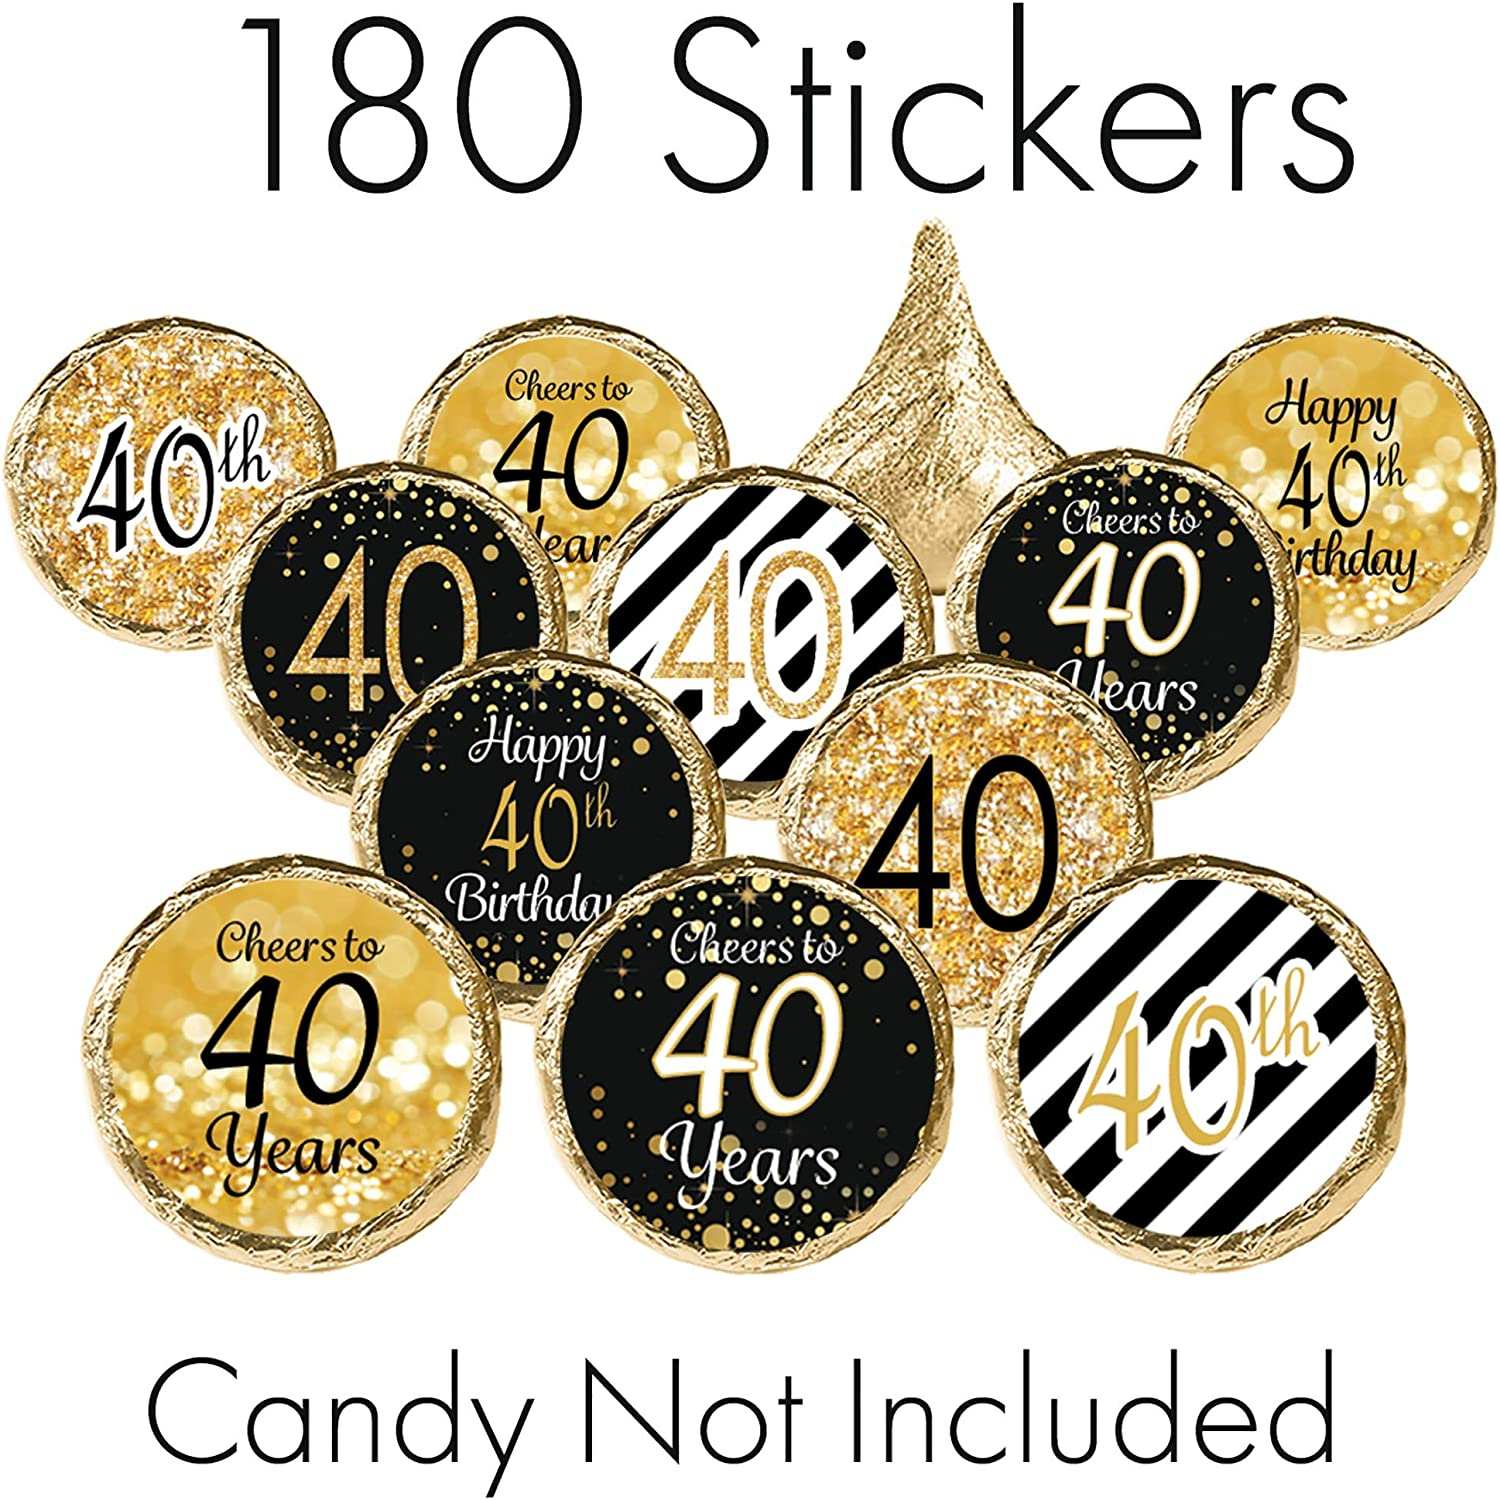 2 Round 50 Pack of Cheers to 40 Years Label Stickers Birthday Party Sticker Labels 40th Birthday Party Favor Stickers 40th Birthday Party Decoration